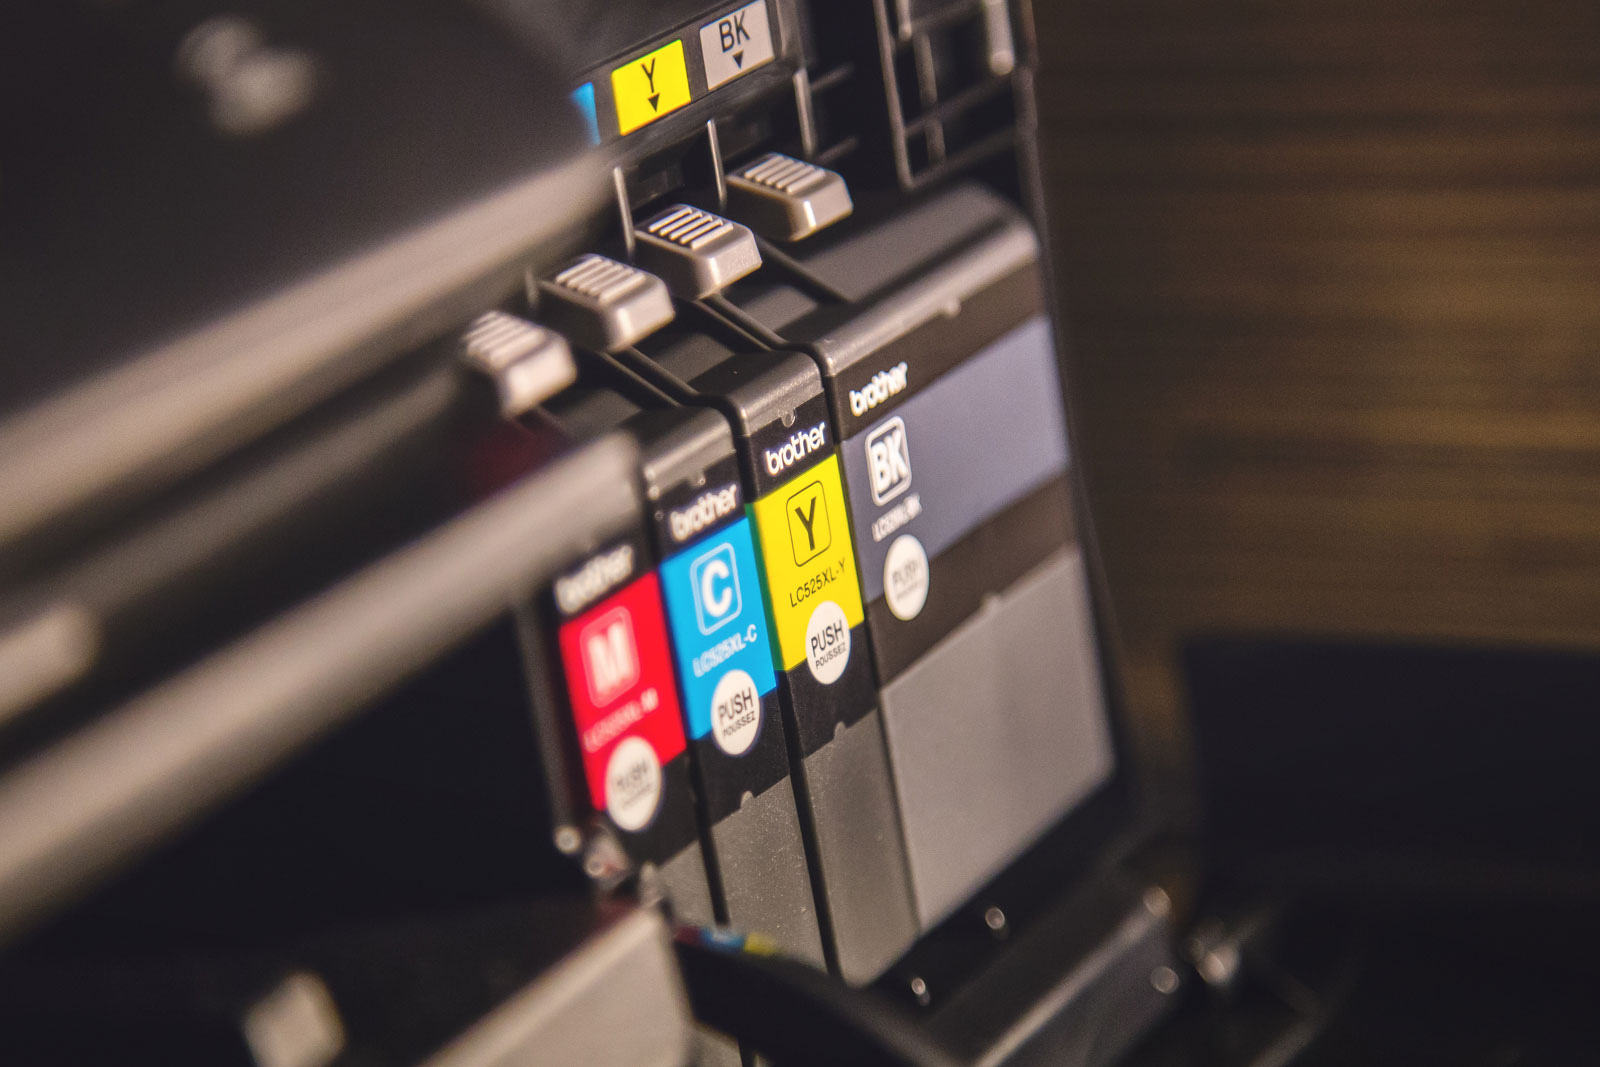 wat is de beste inkjet printer 2019